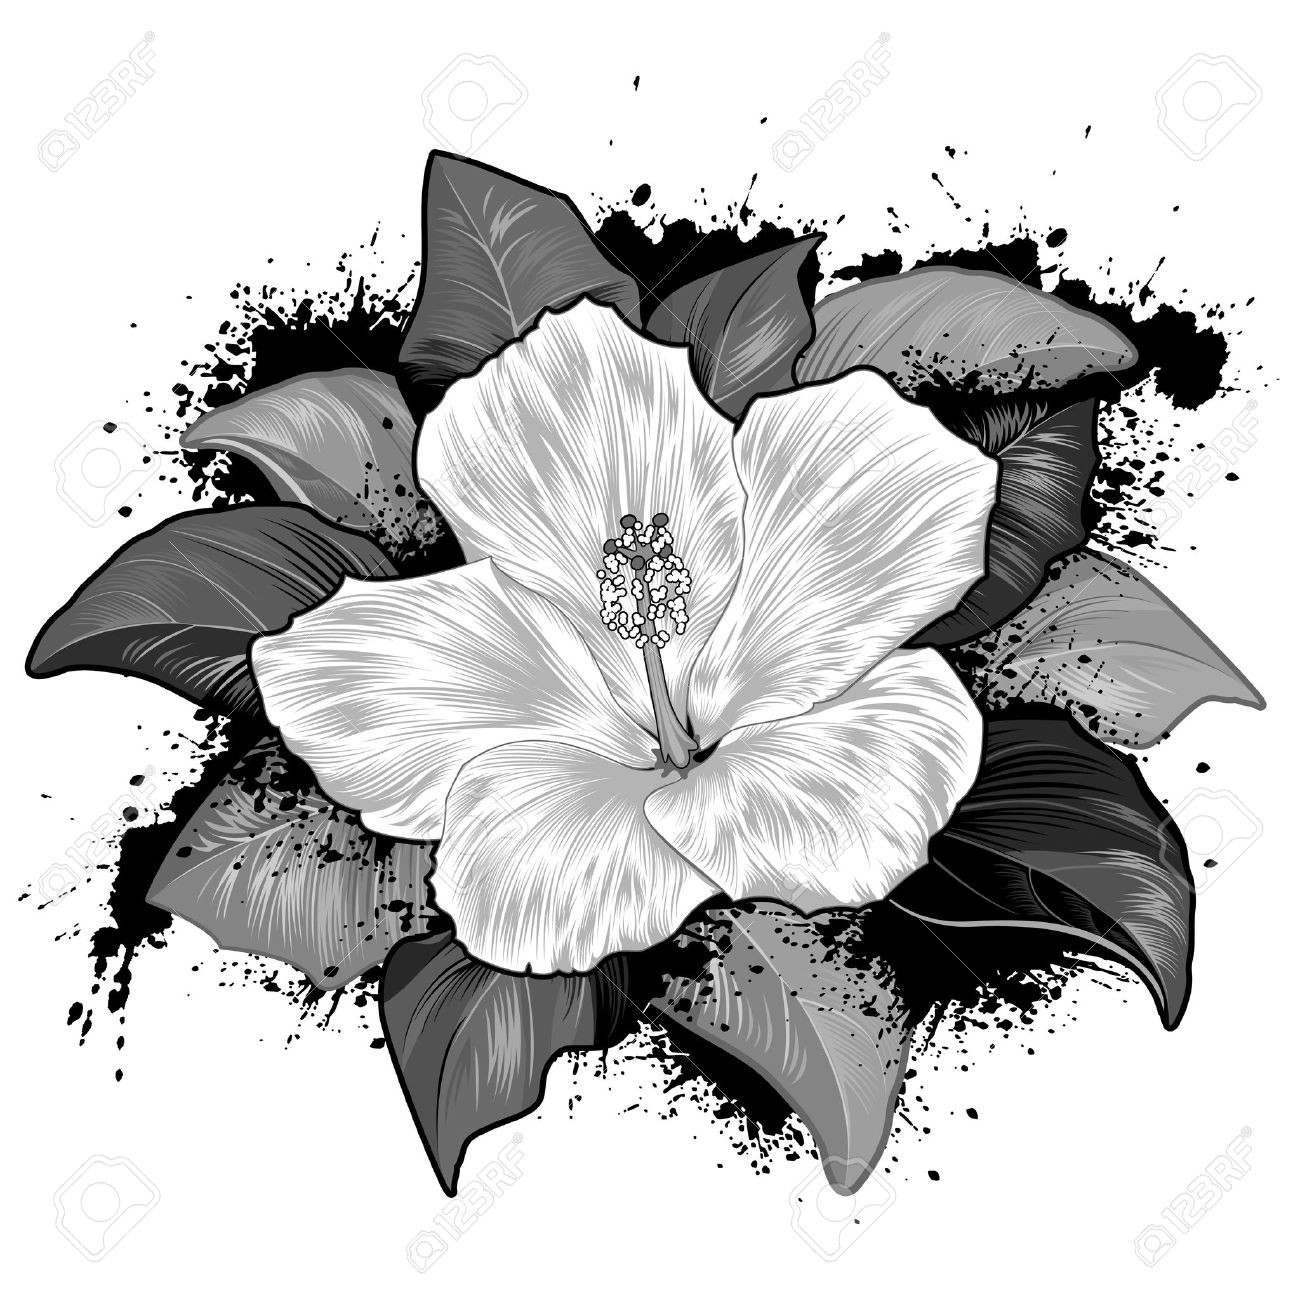 125 Hollyhock Cliparts, Stock Vector And Royalty Free Hollyhock.